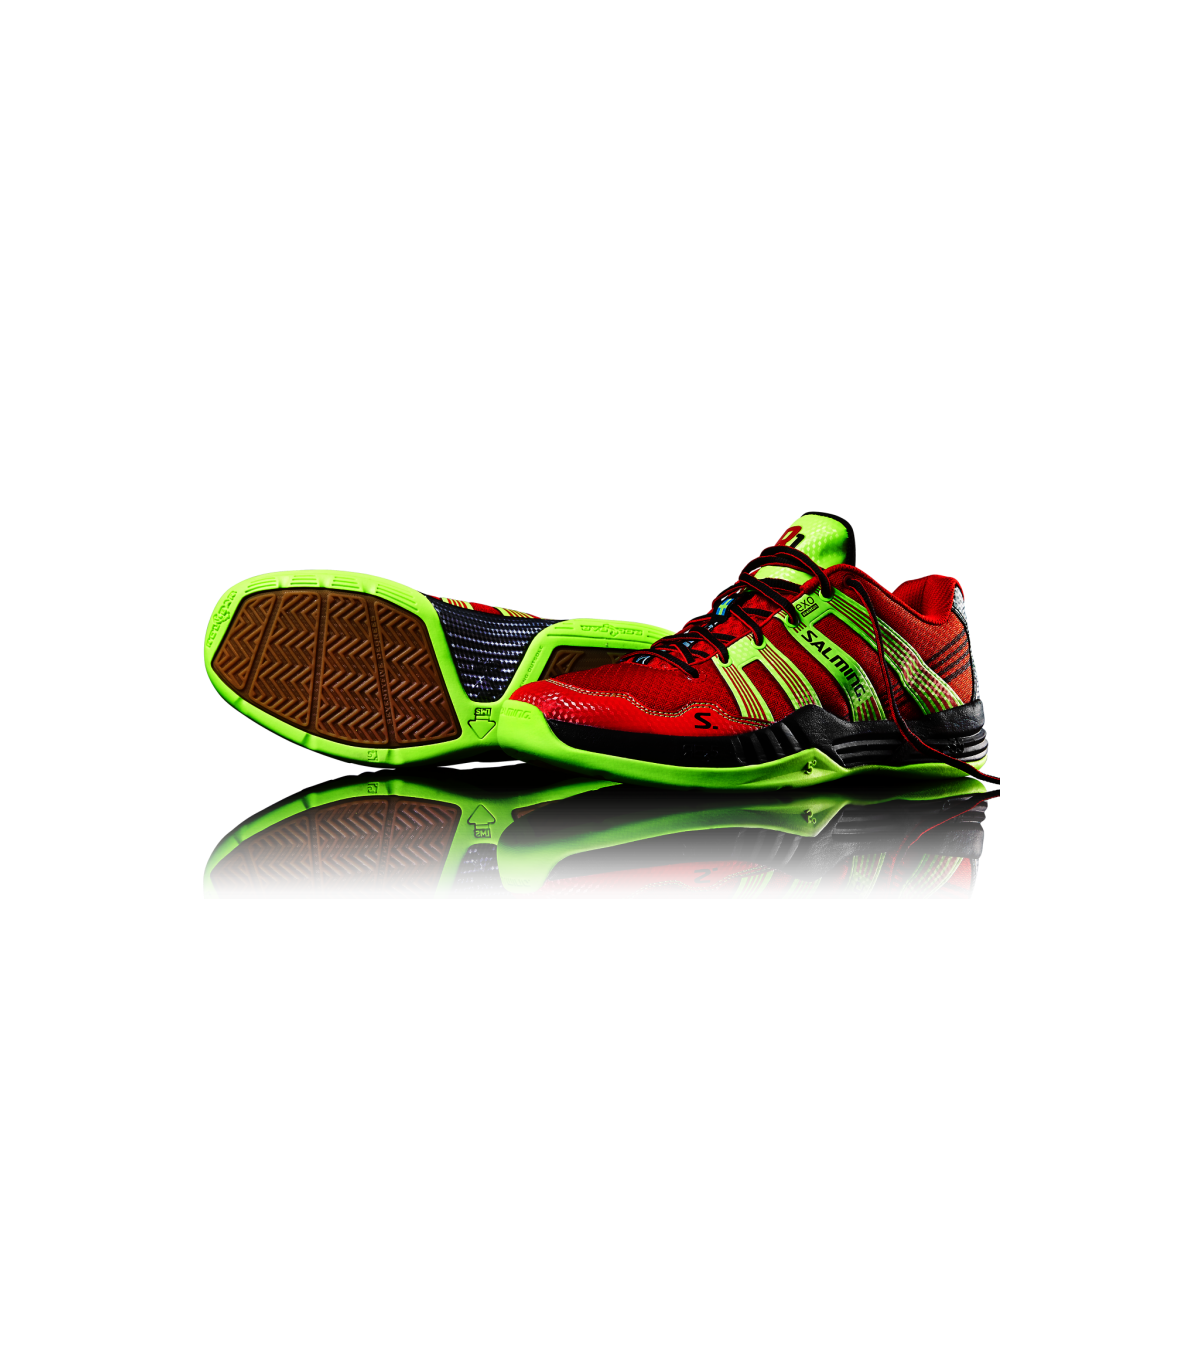 0 Race R1 My Salming Chaussure 3 Squash Rougejaune wxBnH